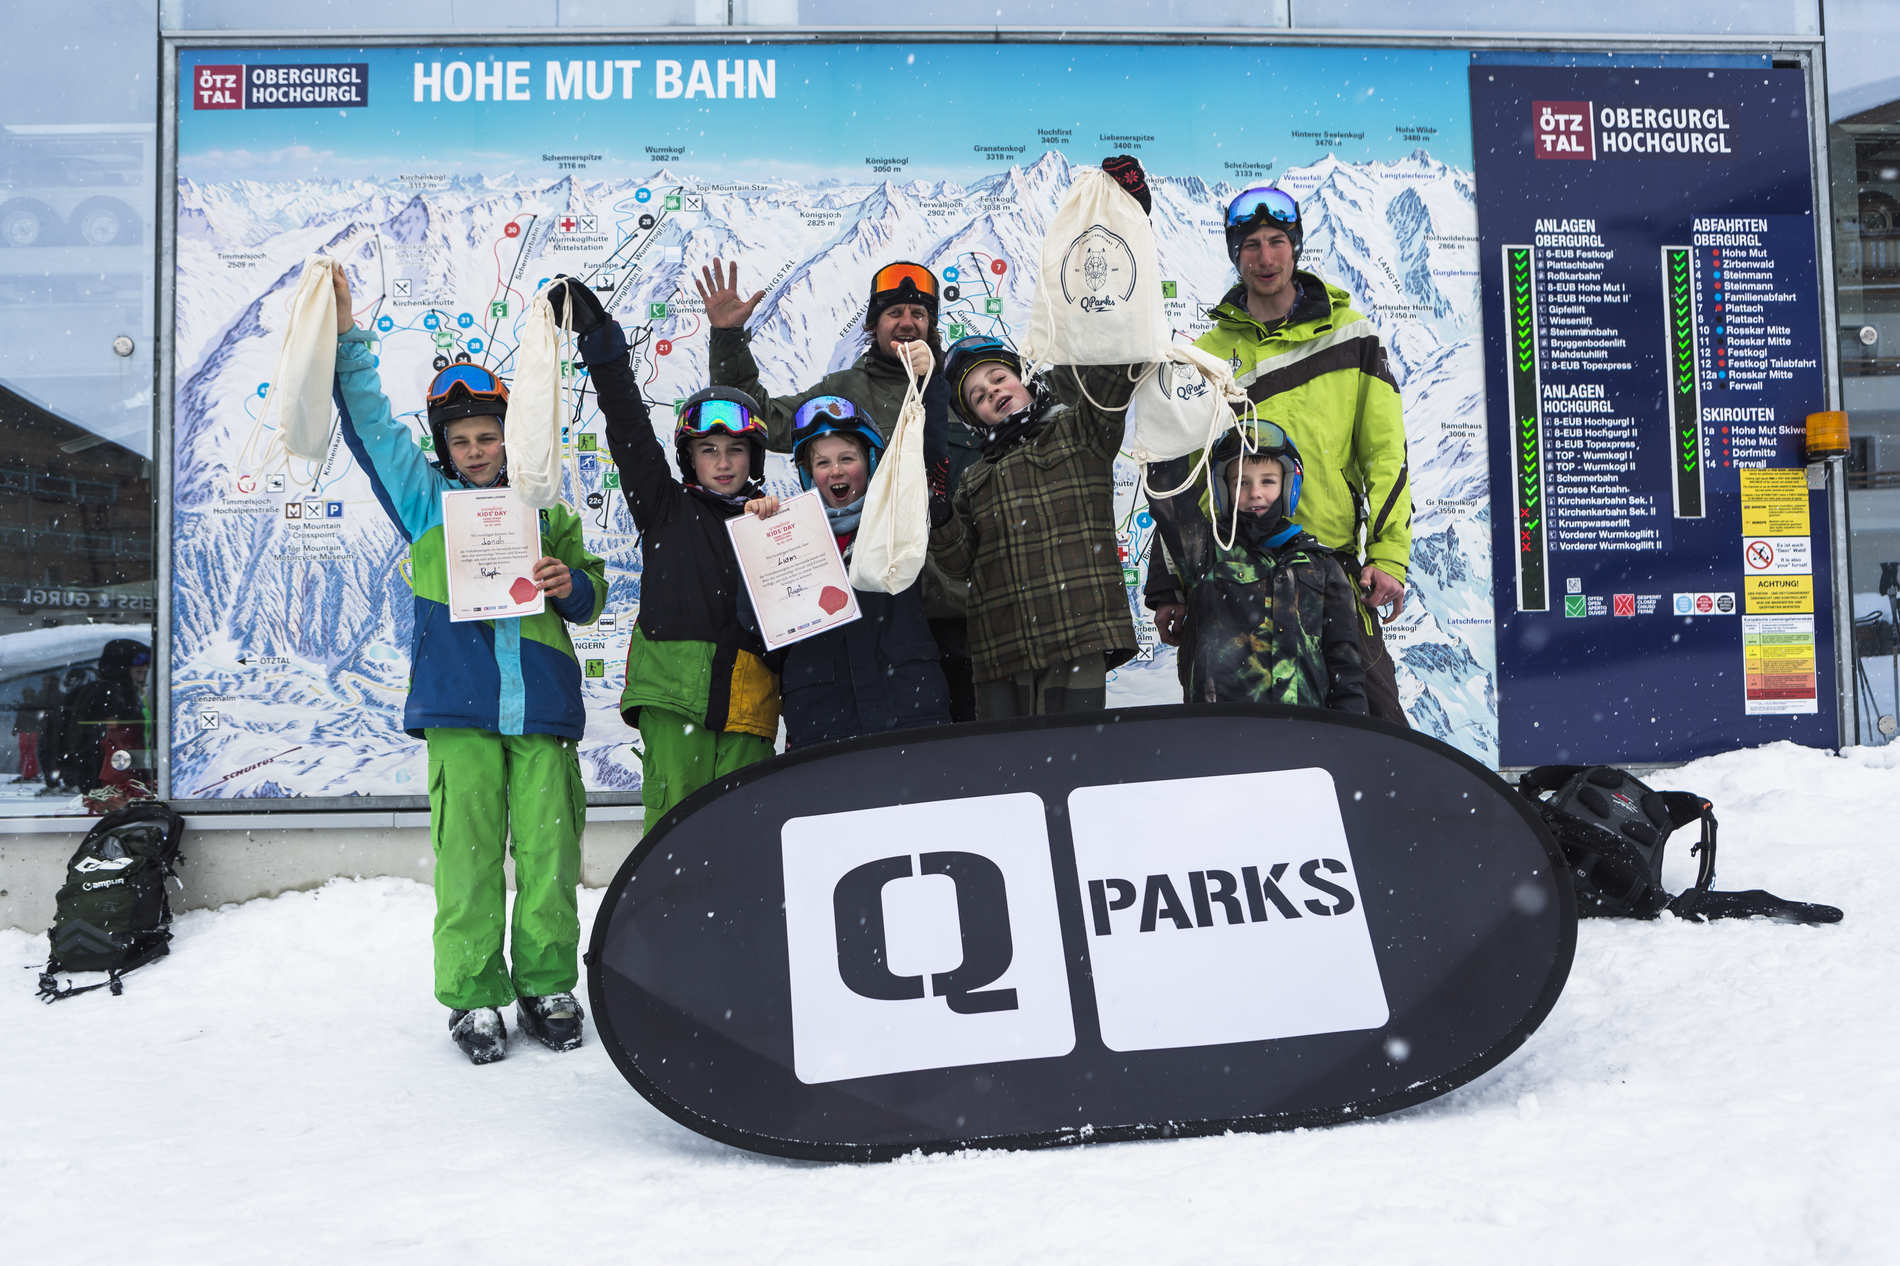 obergurgl 16 02 2018 lifestyle roland haschka qparks 041